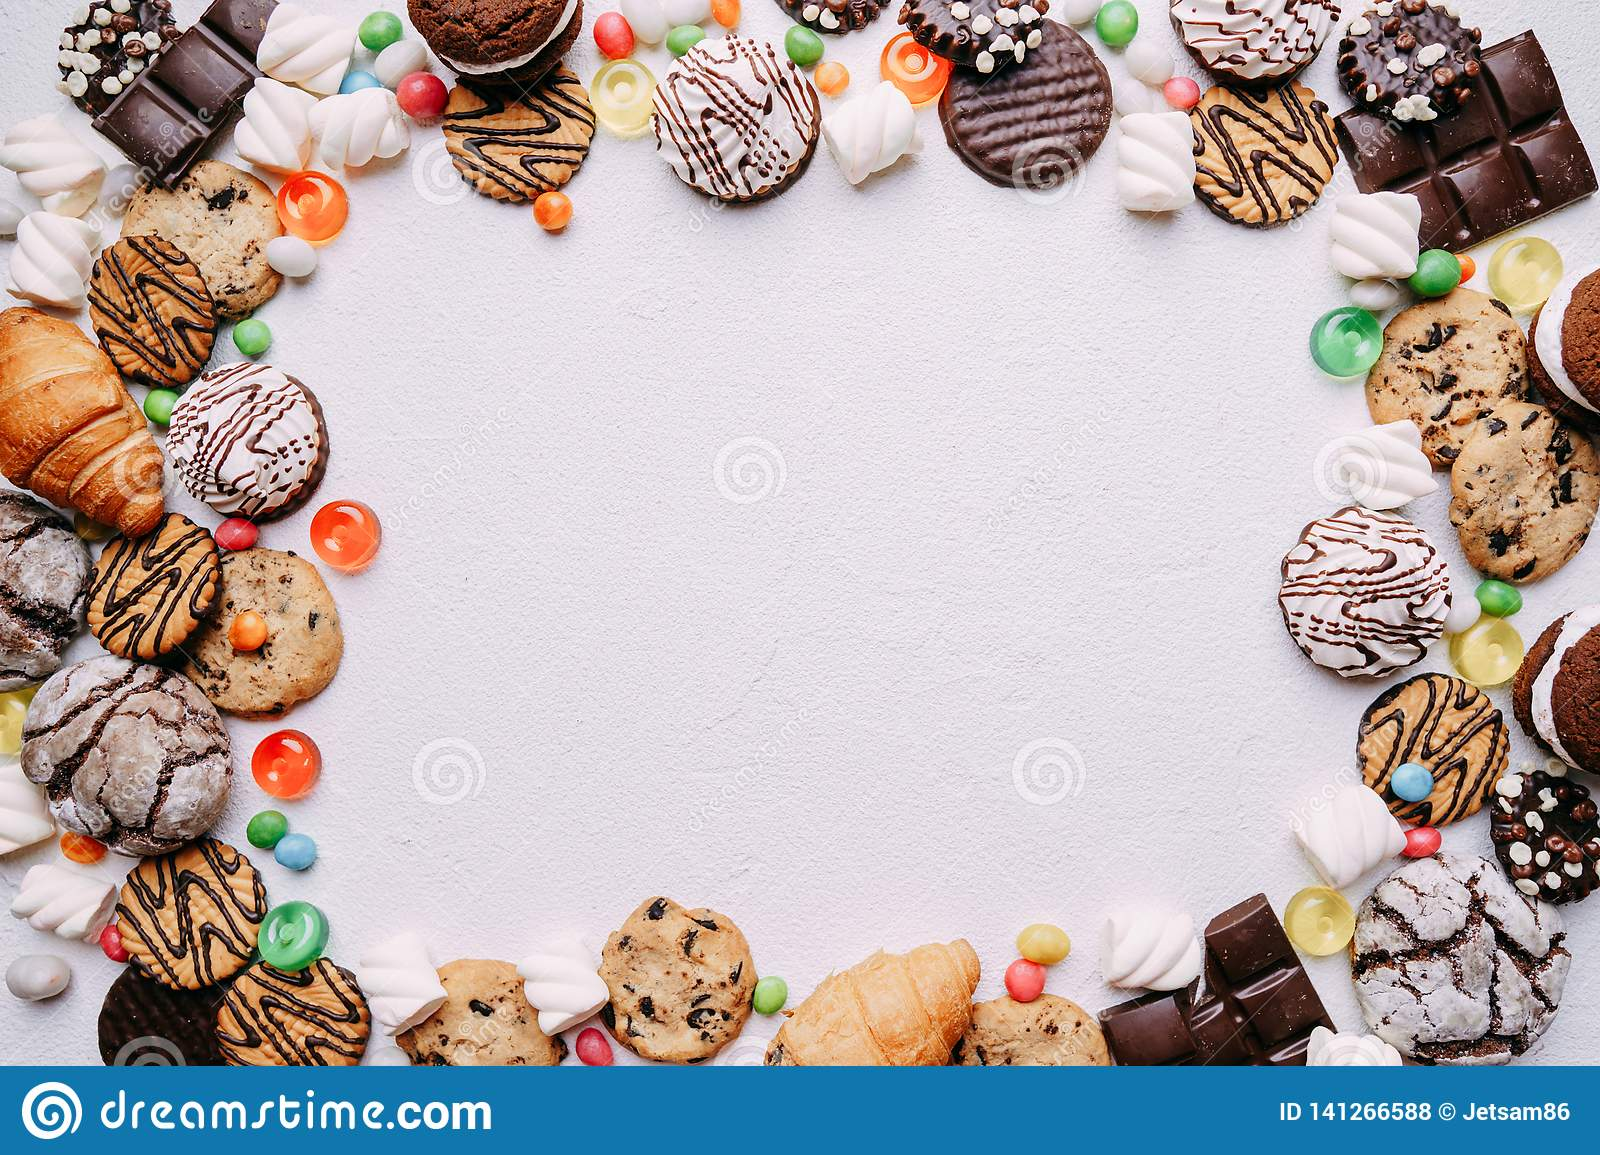 Lollipop candy background, confectionery design